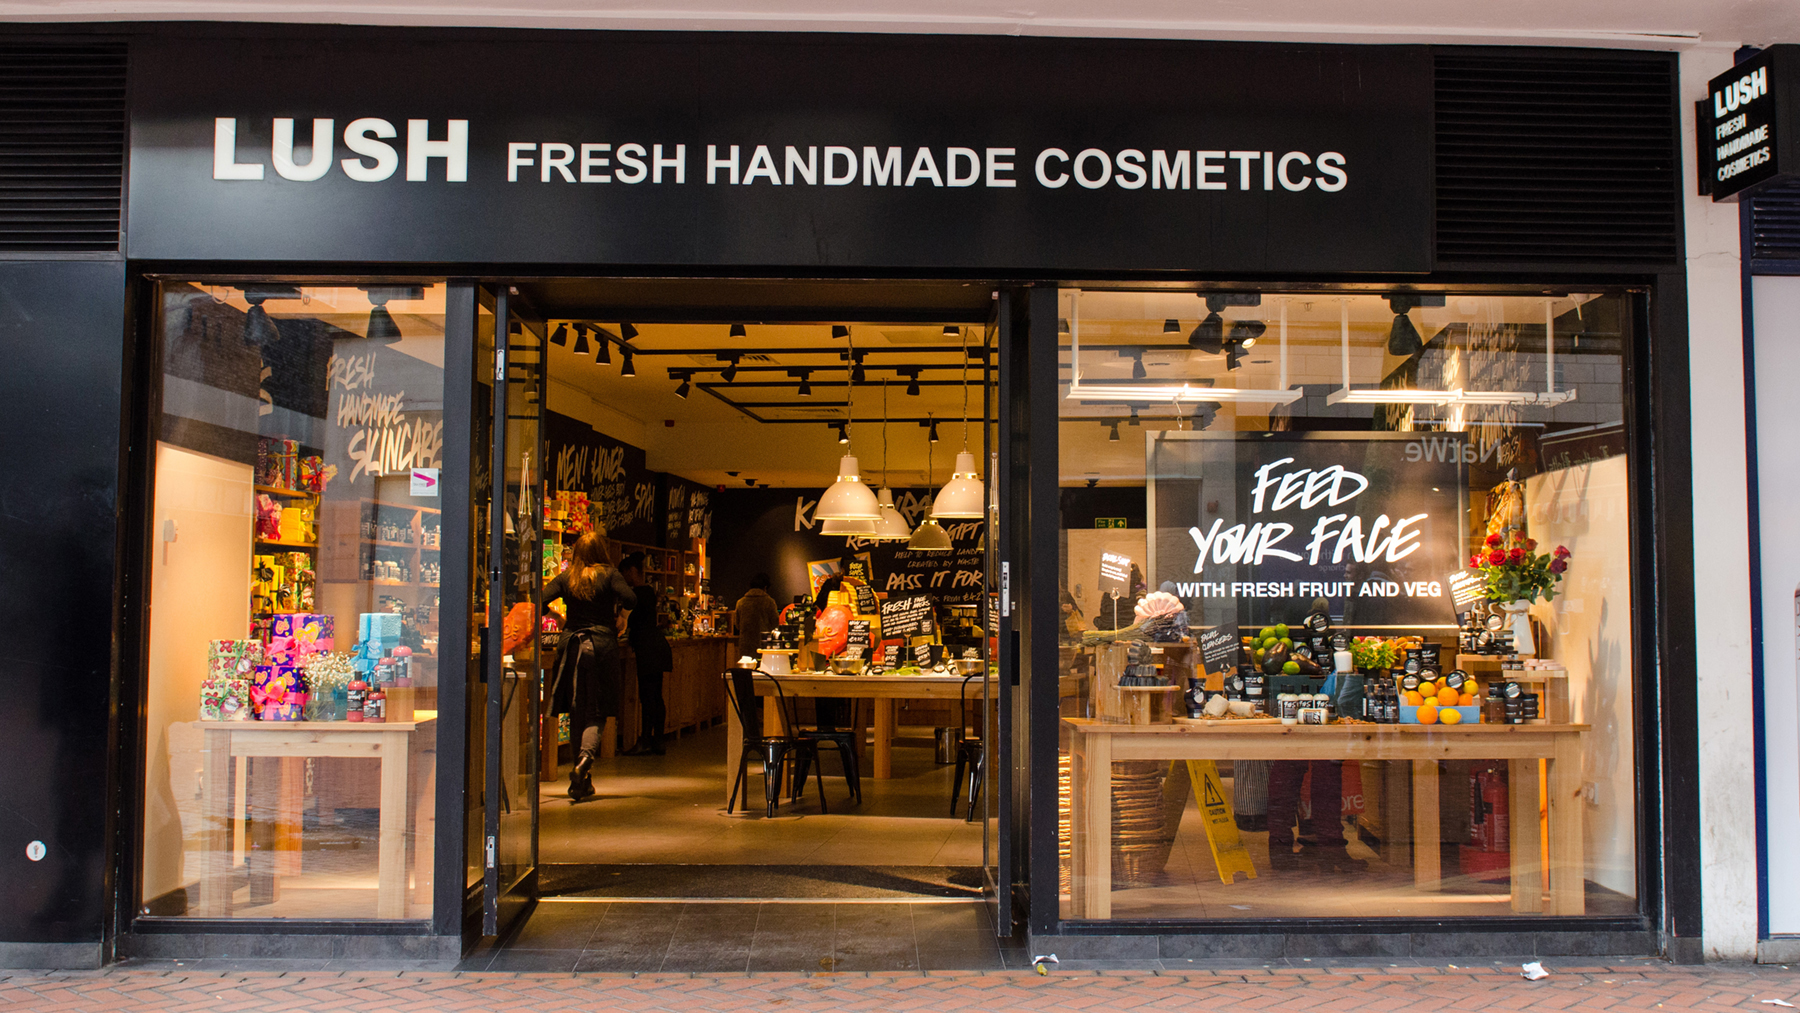 Birmingham Lush Fresh Handmade Cosmetics Uk